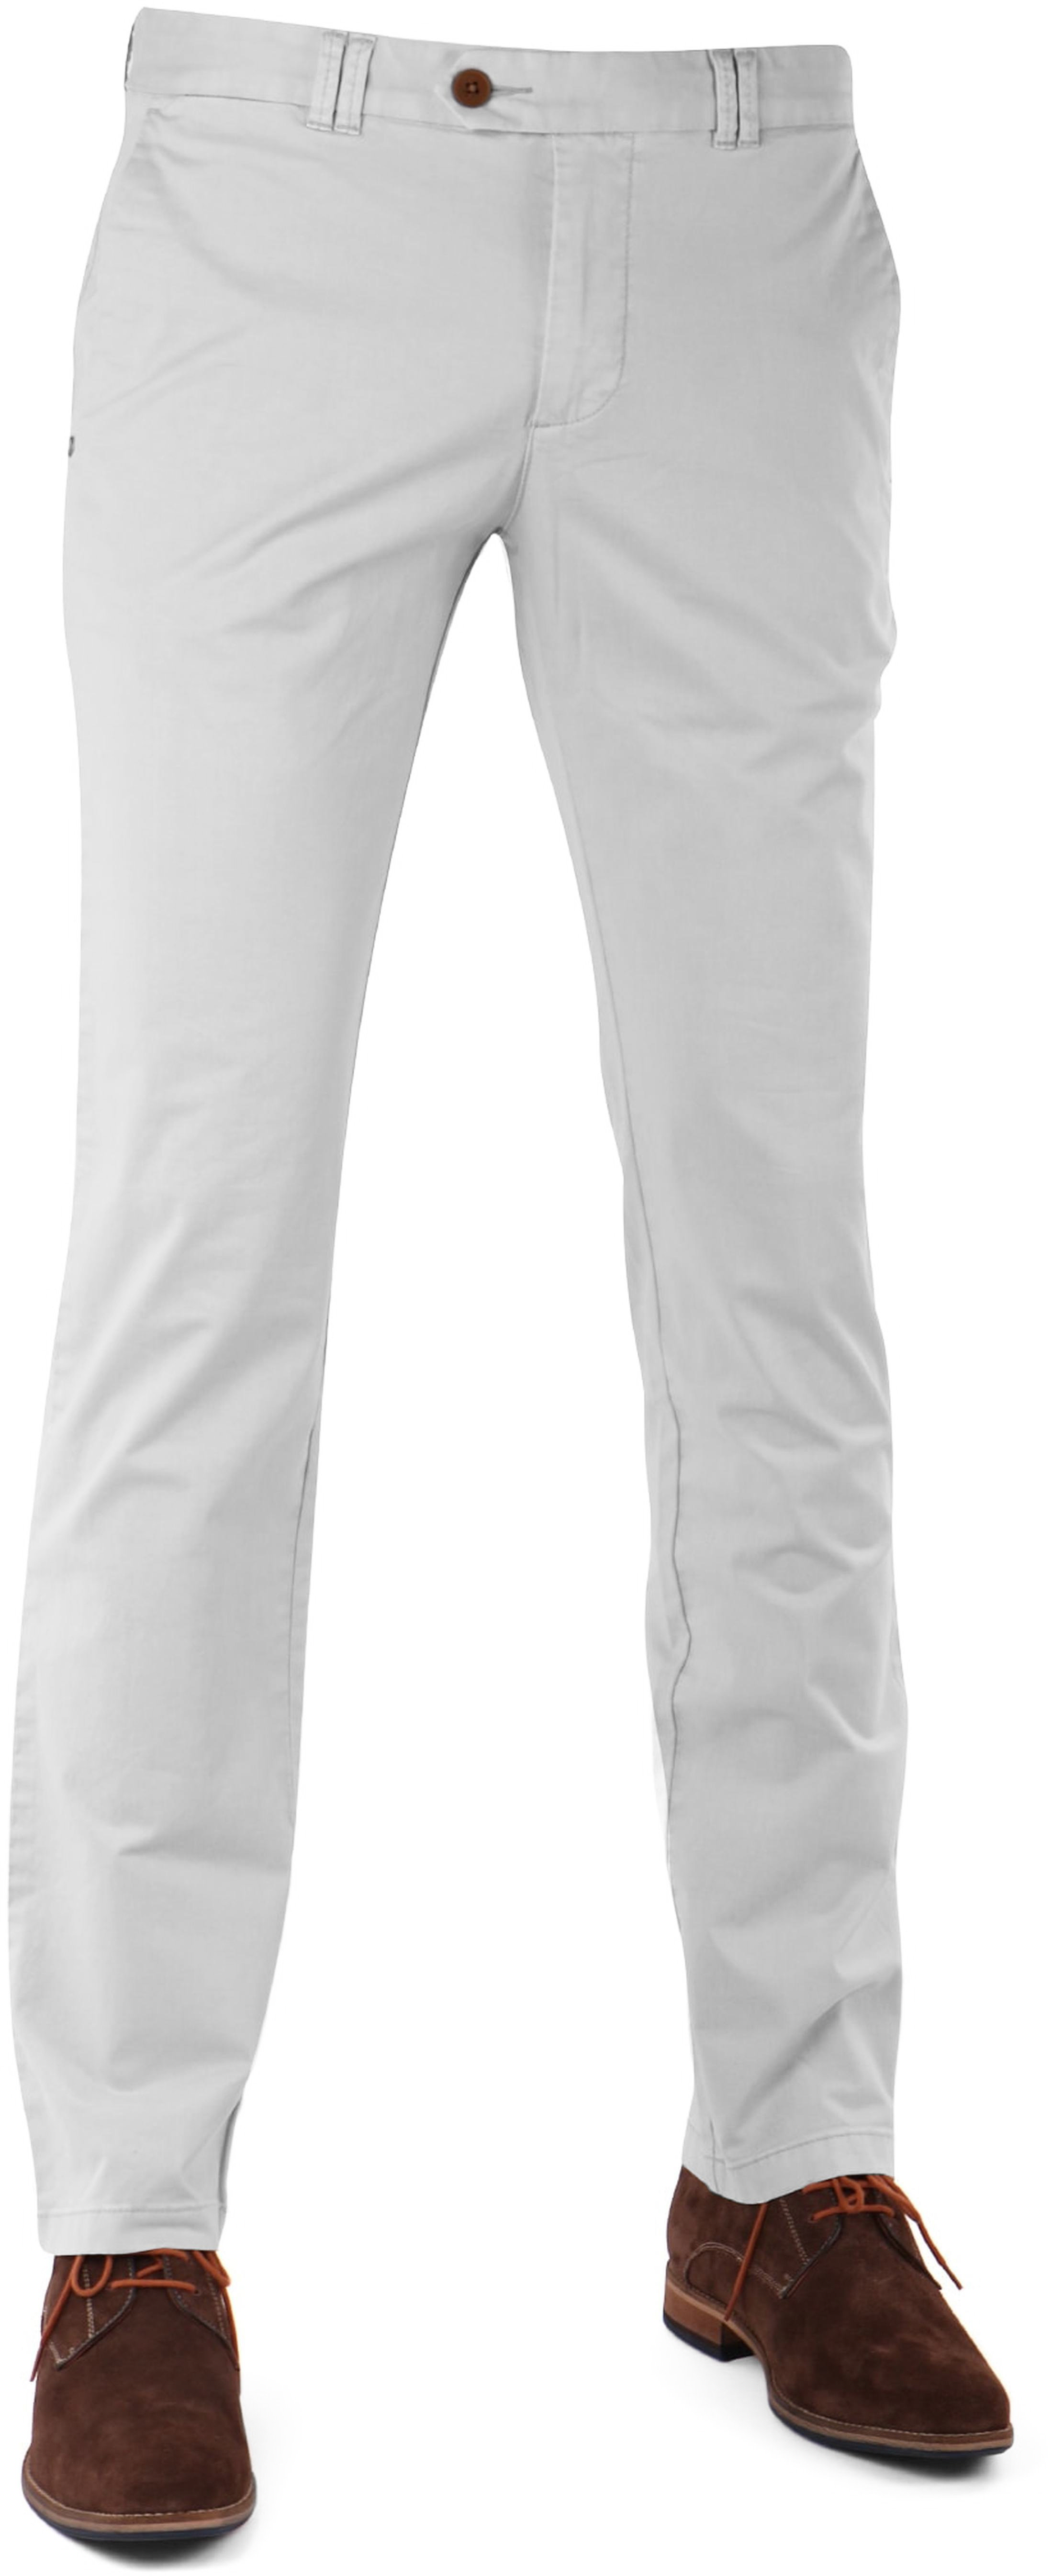 Suitable Chino Hose Light Grey foto 0